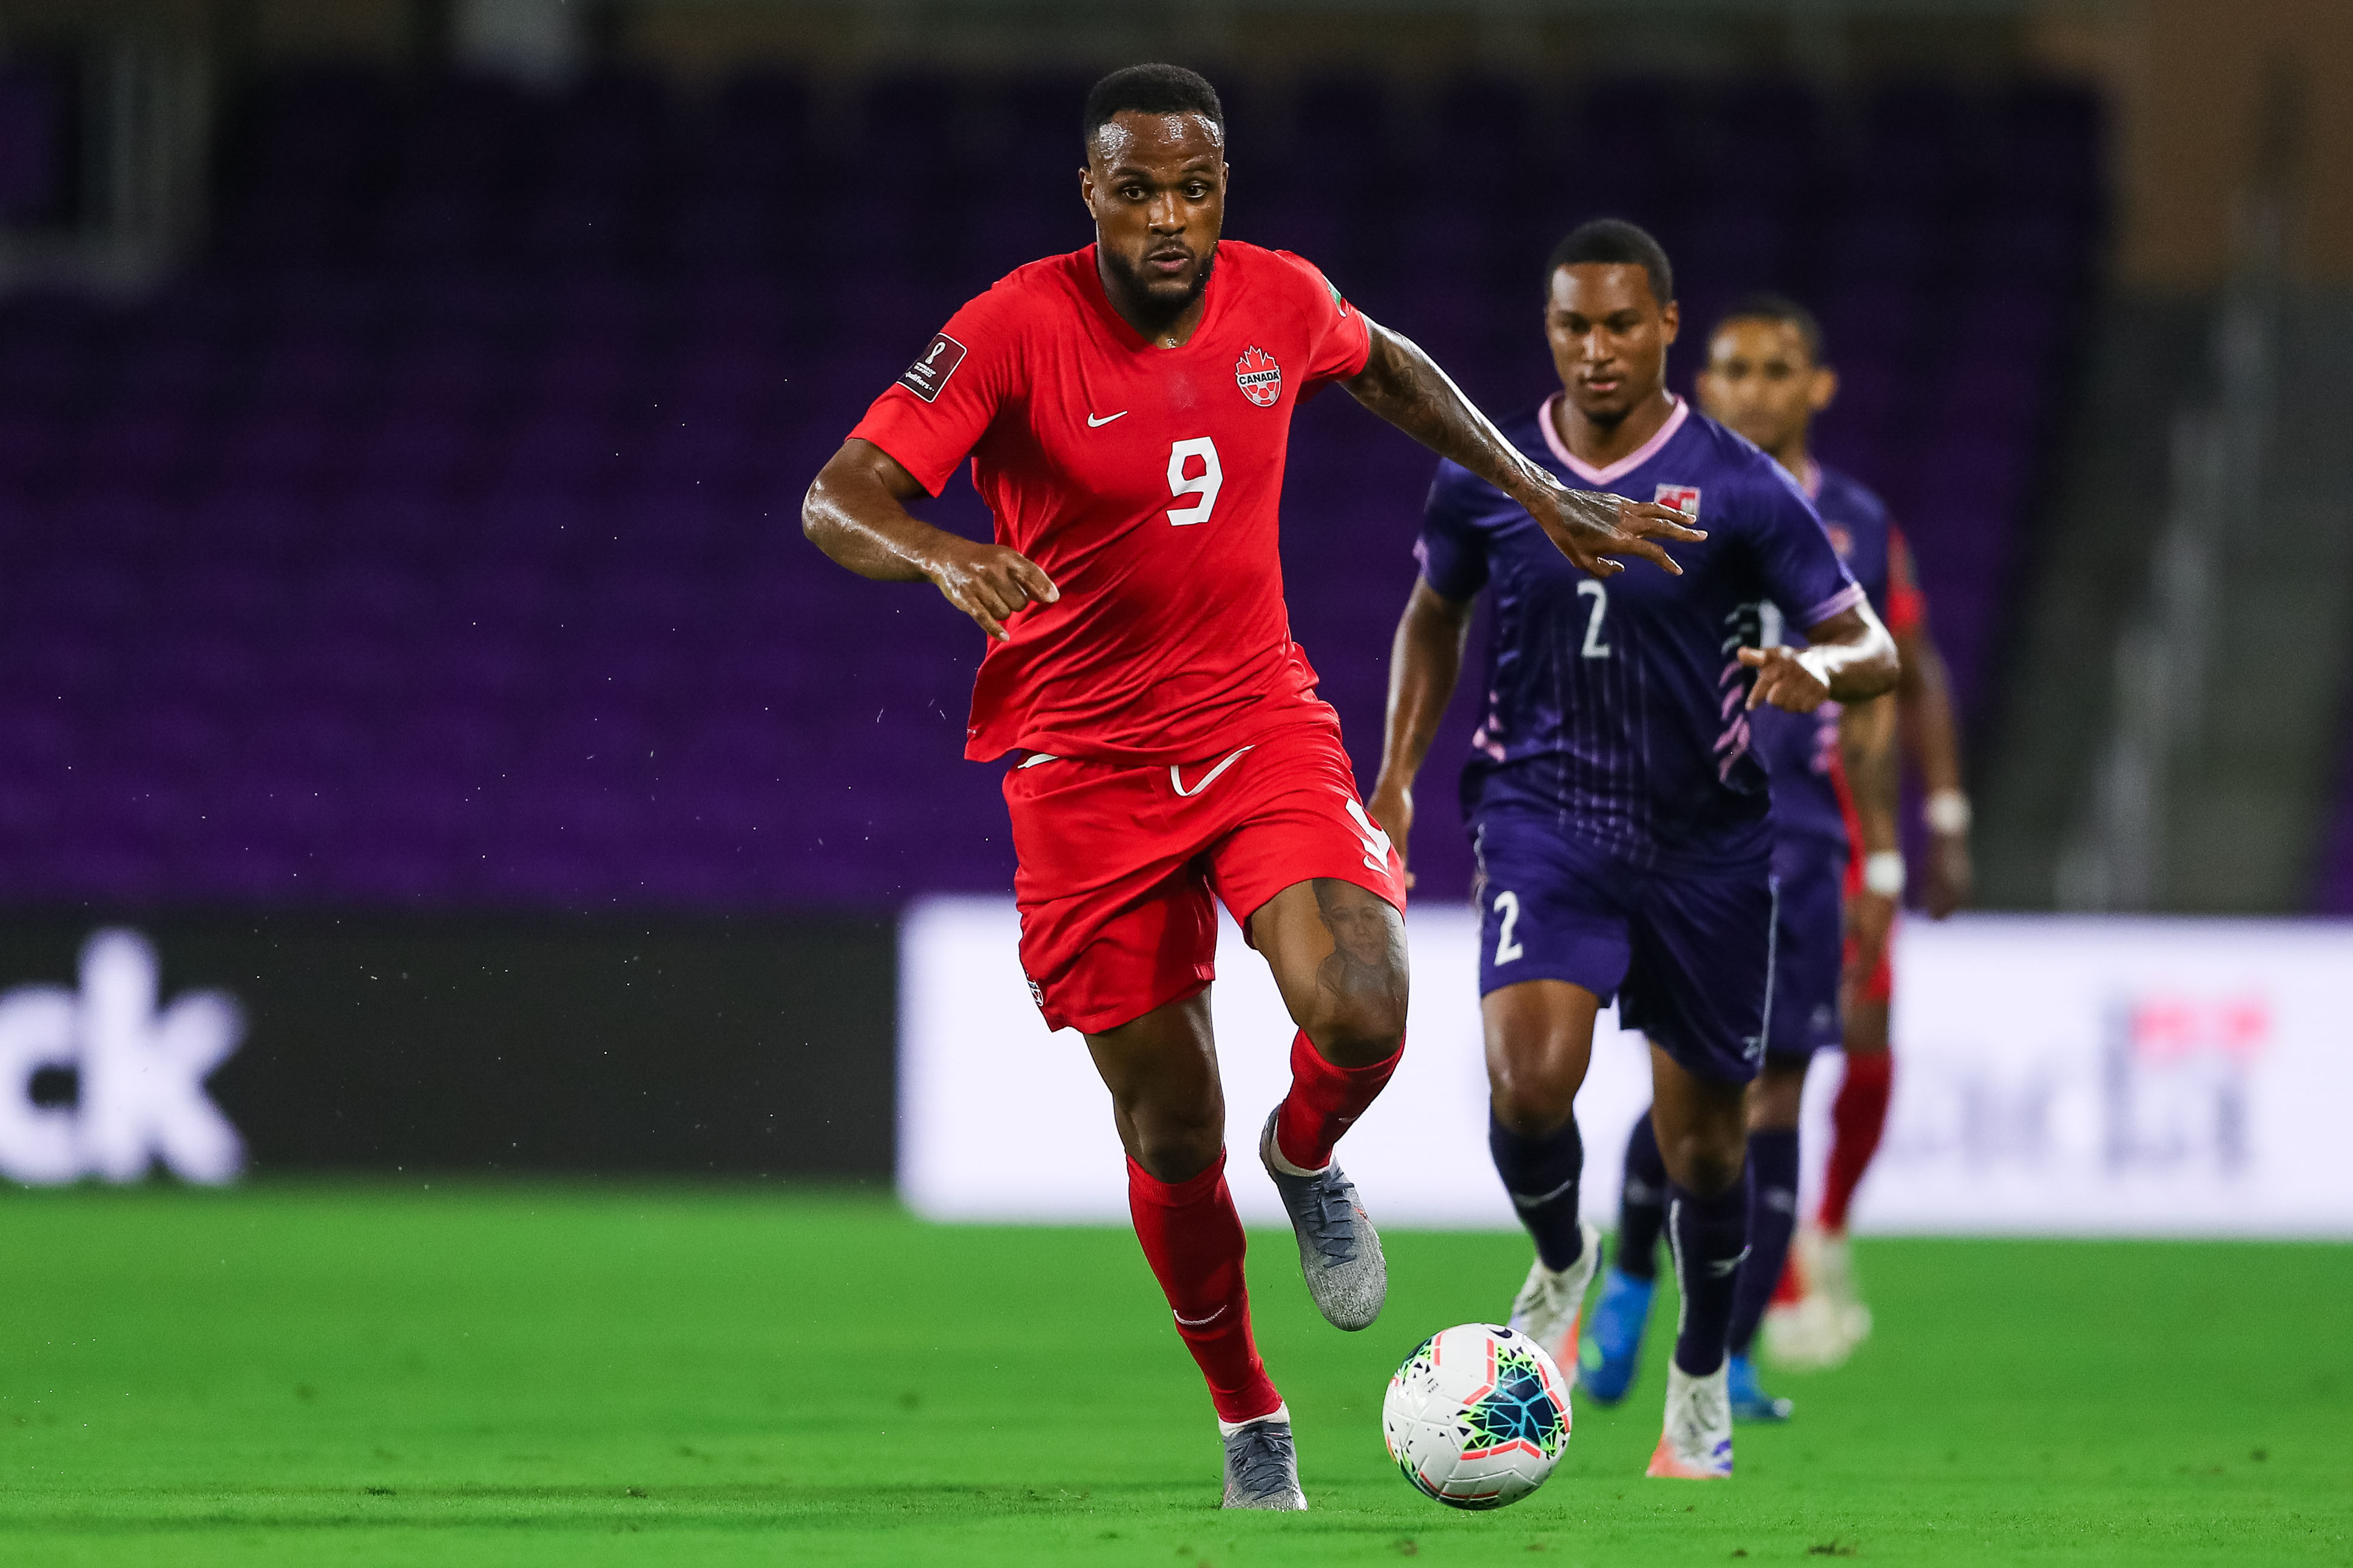 CanMNT's World Cup qualifier vs. Cayman Islands rescheduled - Canadian Premier League